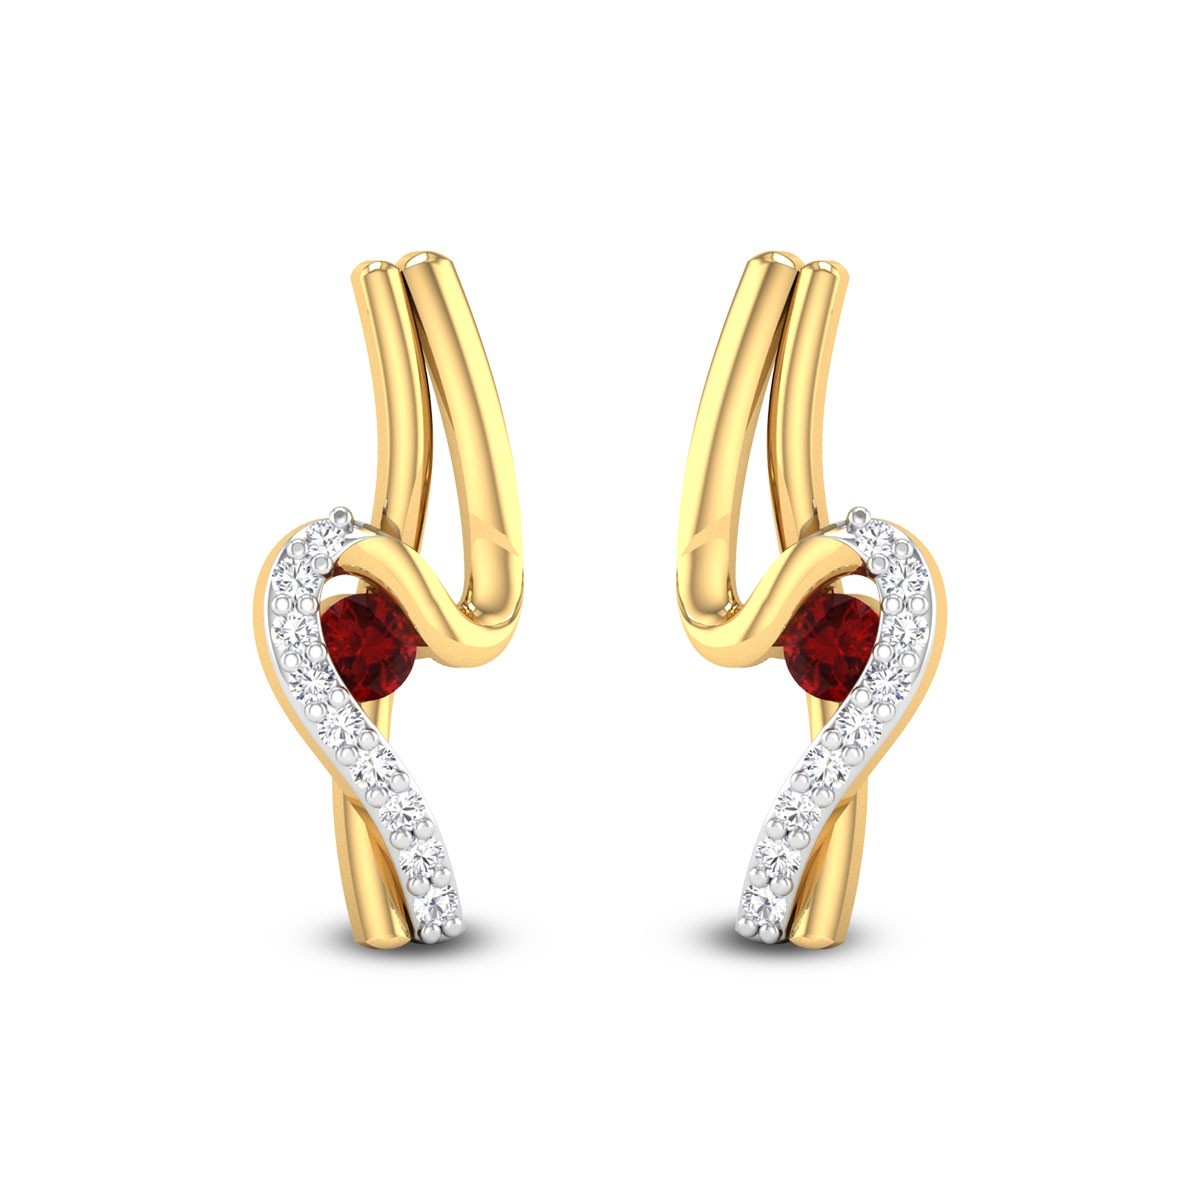 Pragalbha Ruby Stud Earrings